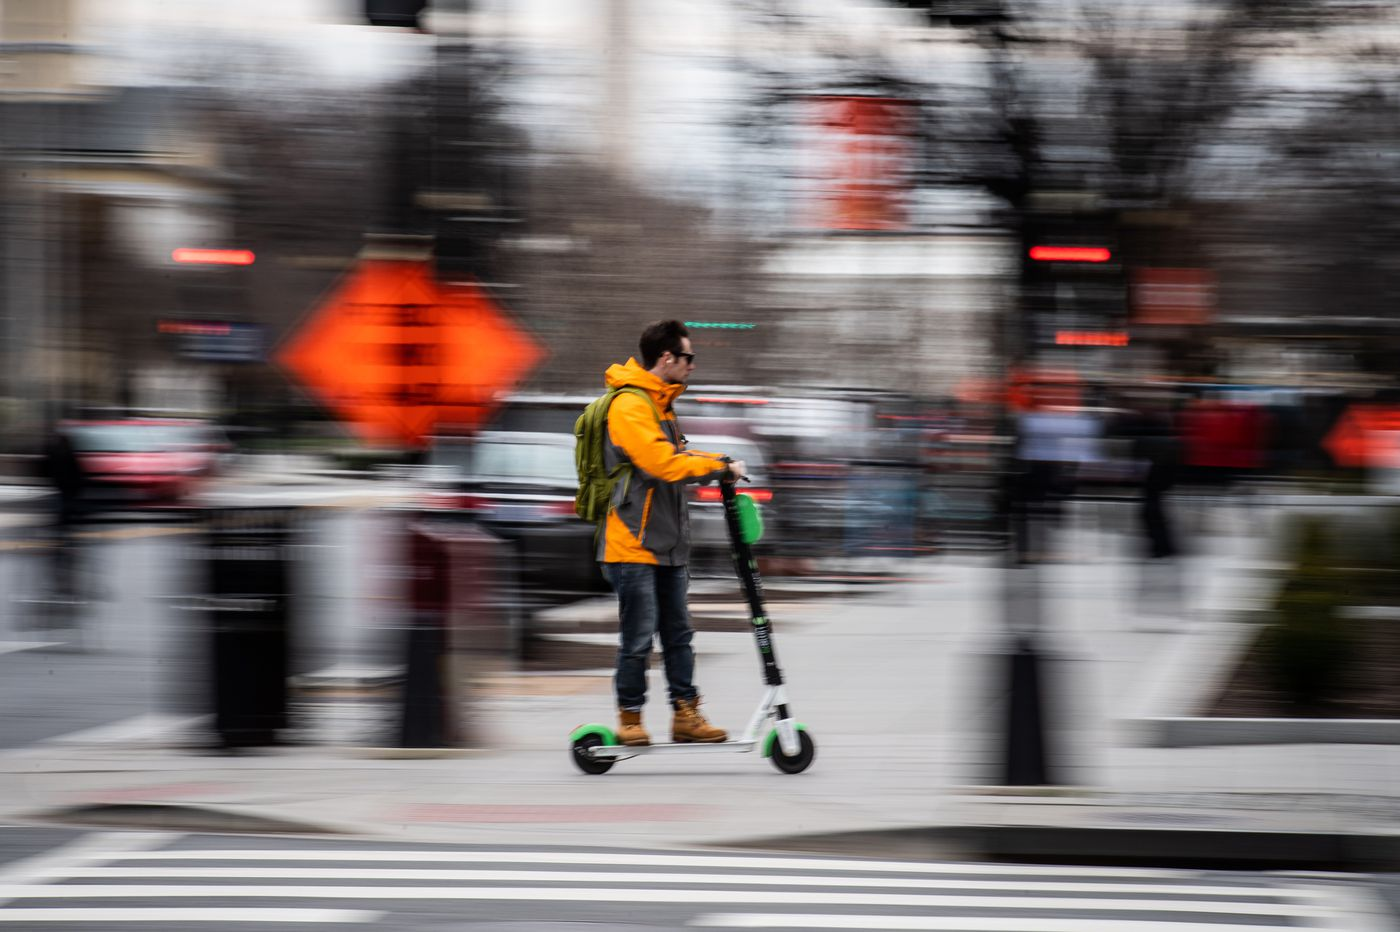 Legalize e-scooters to expand transportation in Pennsylvania | Opinion